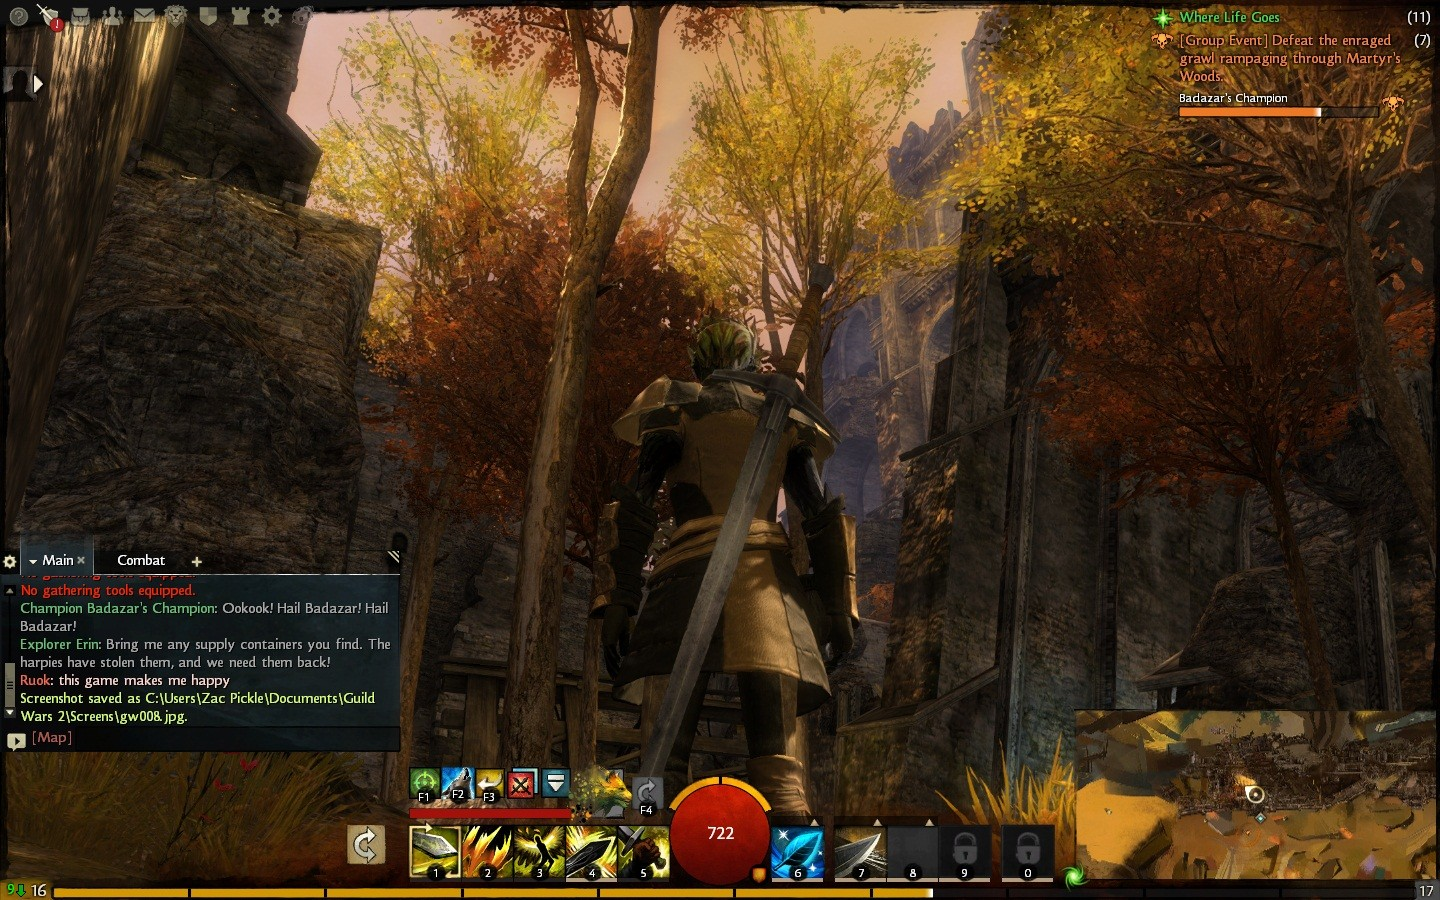 Guild Wars 2 - Ruins of Ascalon